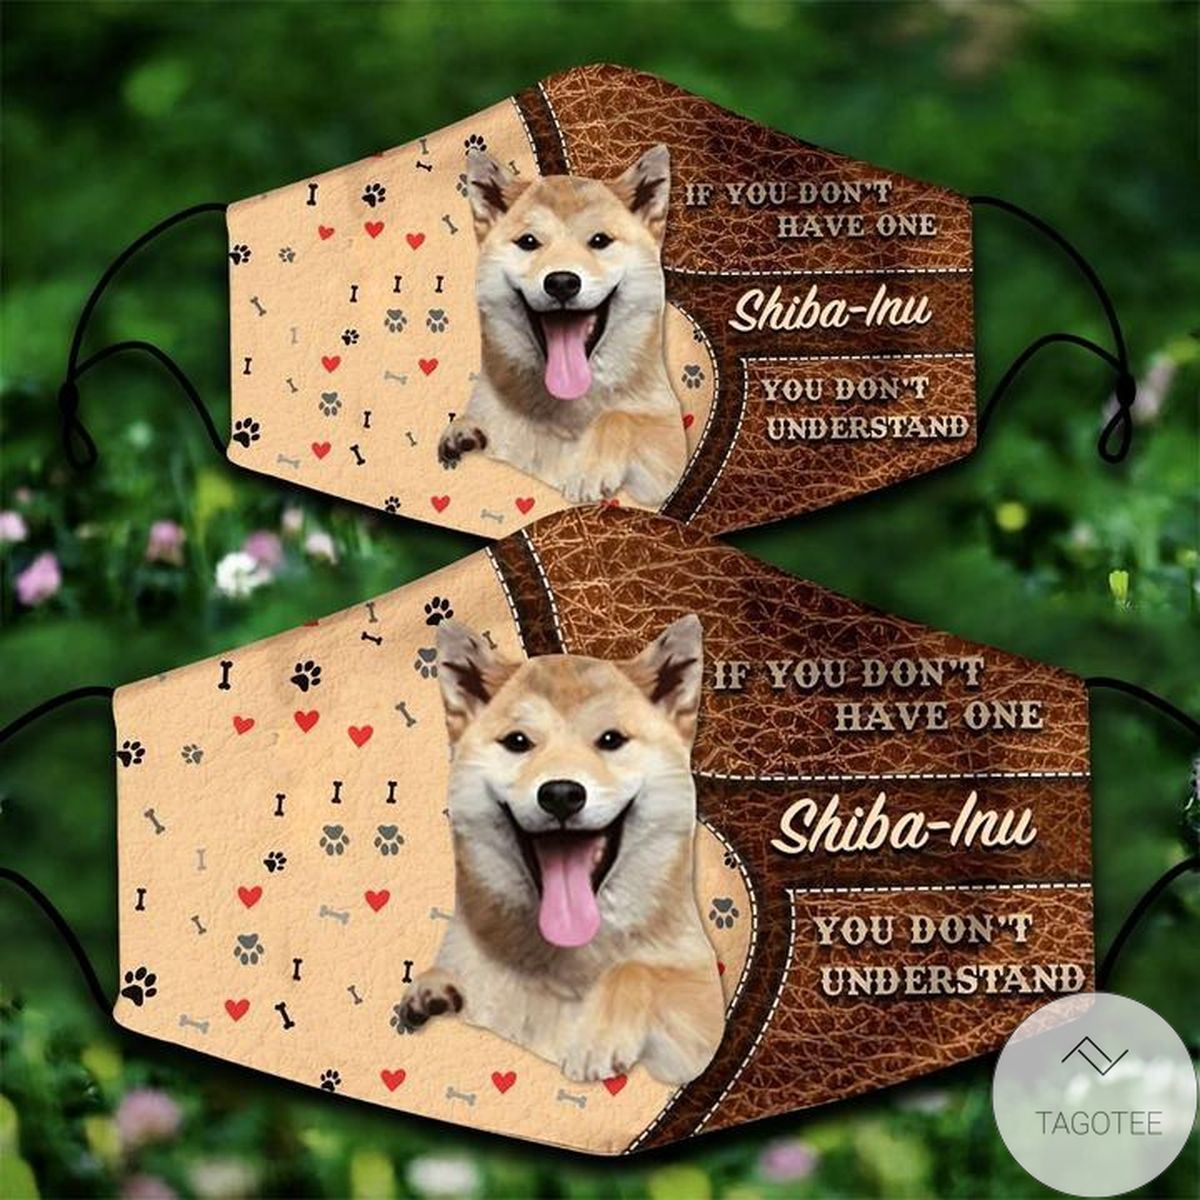 Shiba-Inu If You Don't Have One You Don't Understand Face Mask